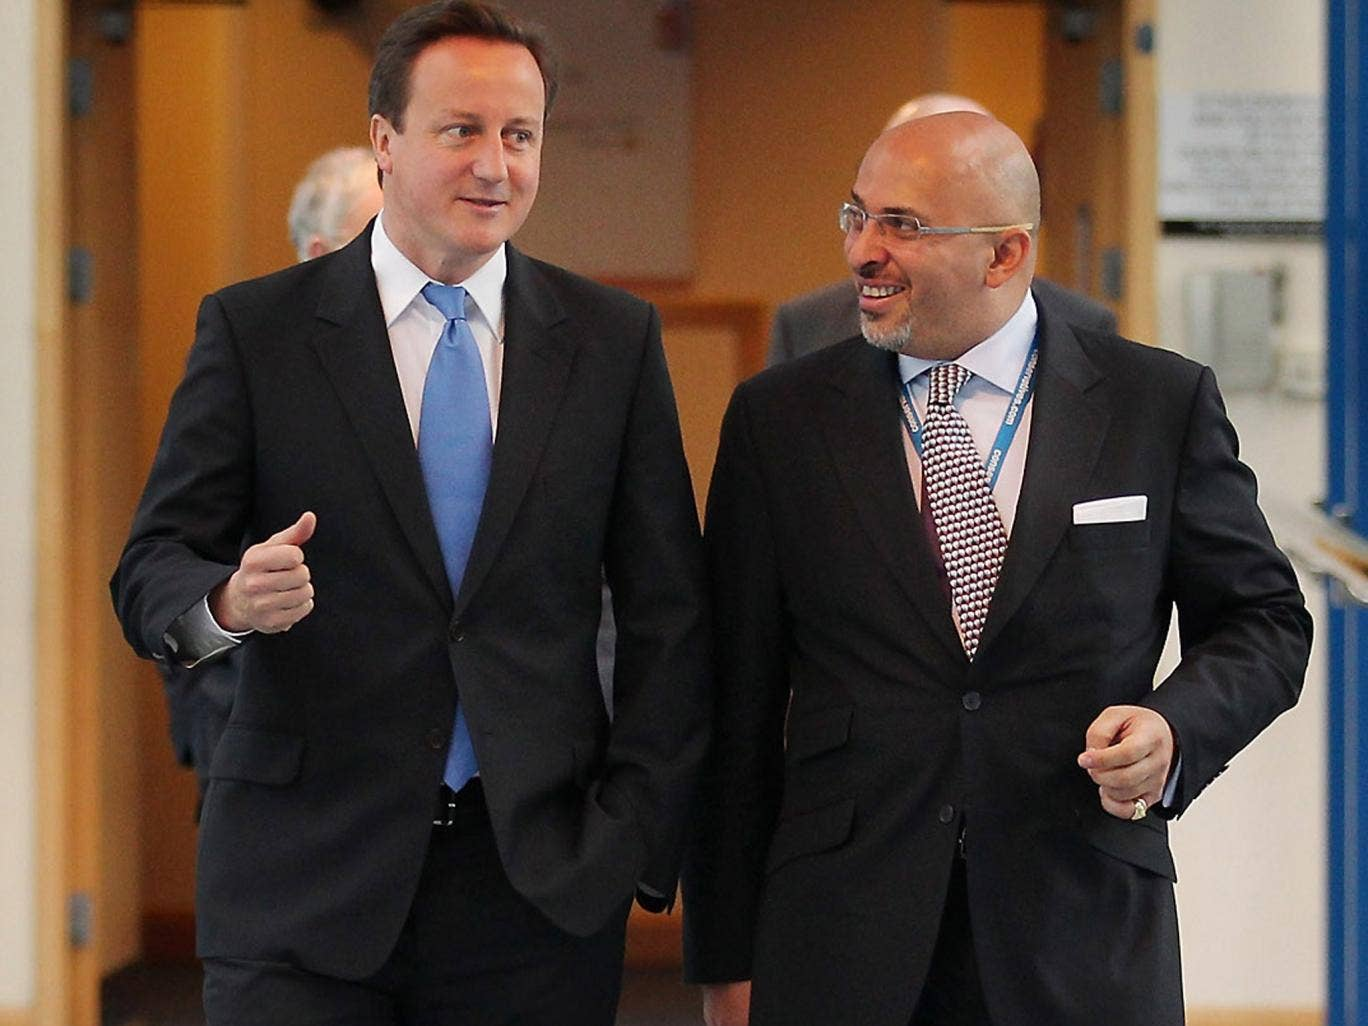 Nadhim Zahawi (right) is an adviser to the Prime Minister